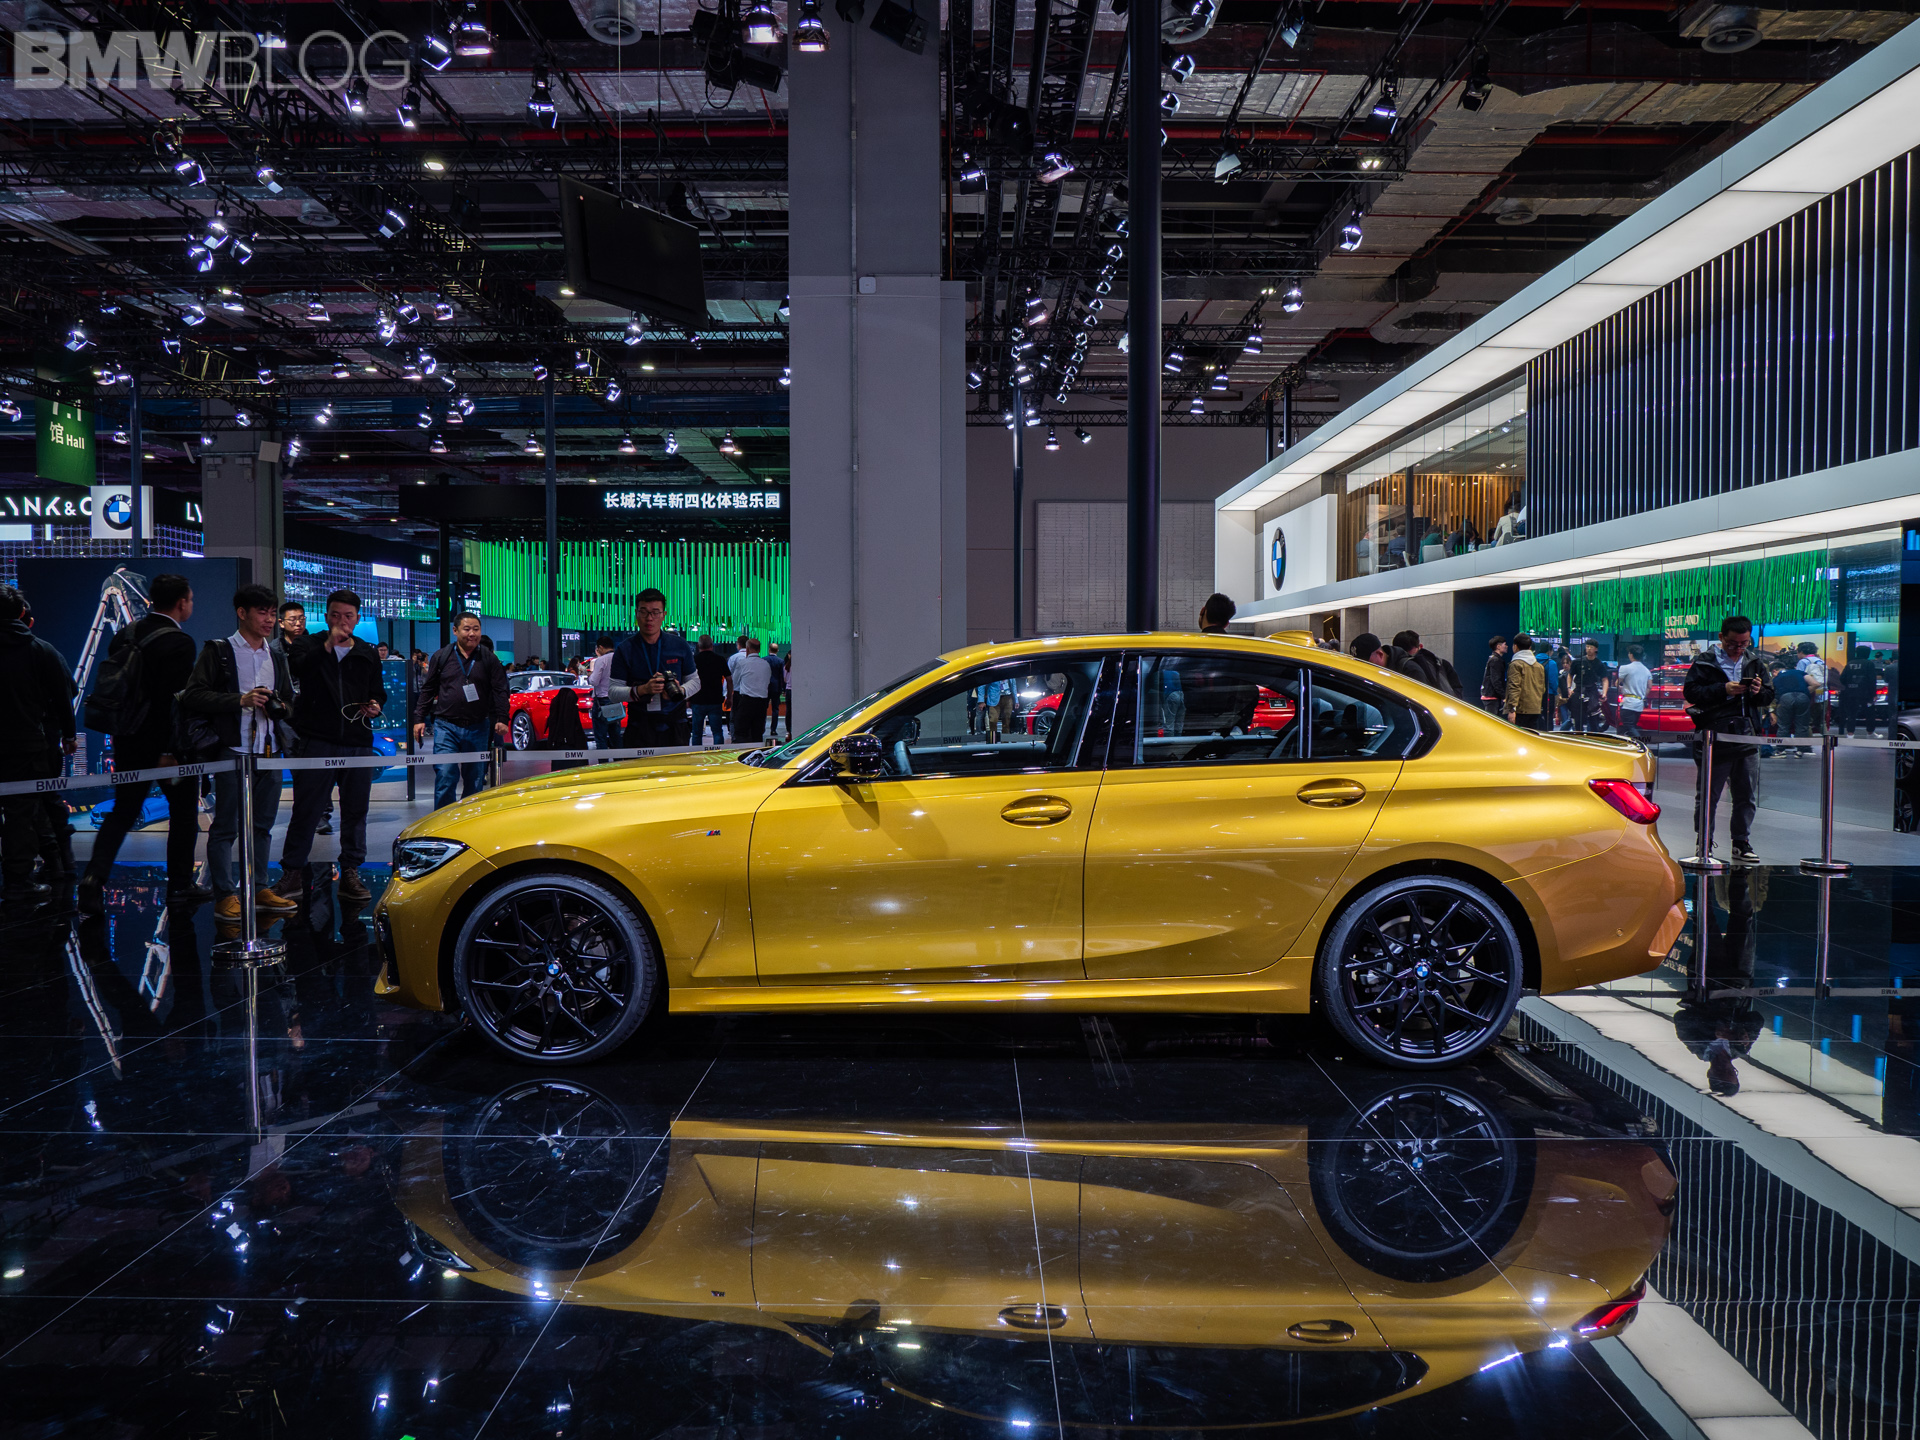 2019 BMW 3 Series Long Wheelbase at the Shanghai Motor Show